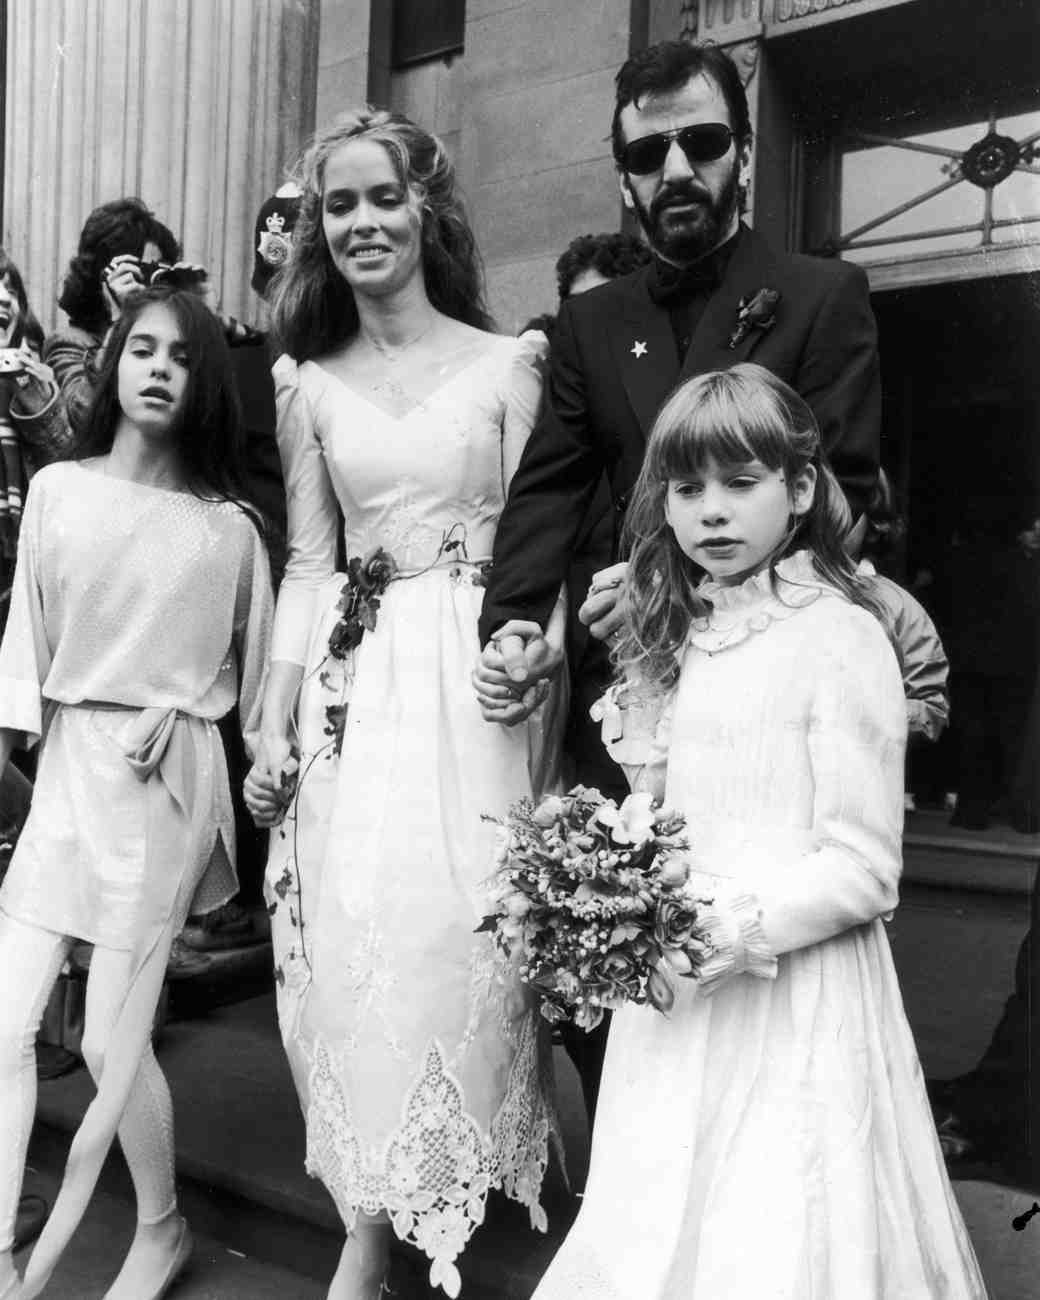 The Most Iconic Rock Star Wedding Photos | Martha Stewart Weddings